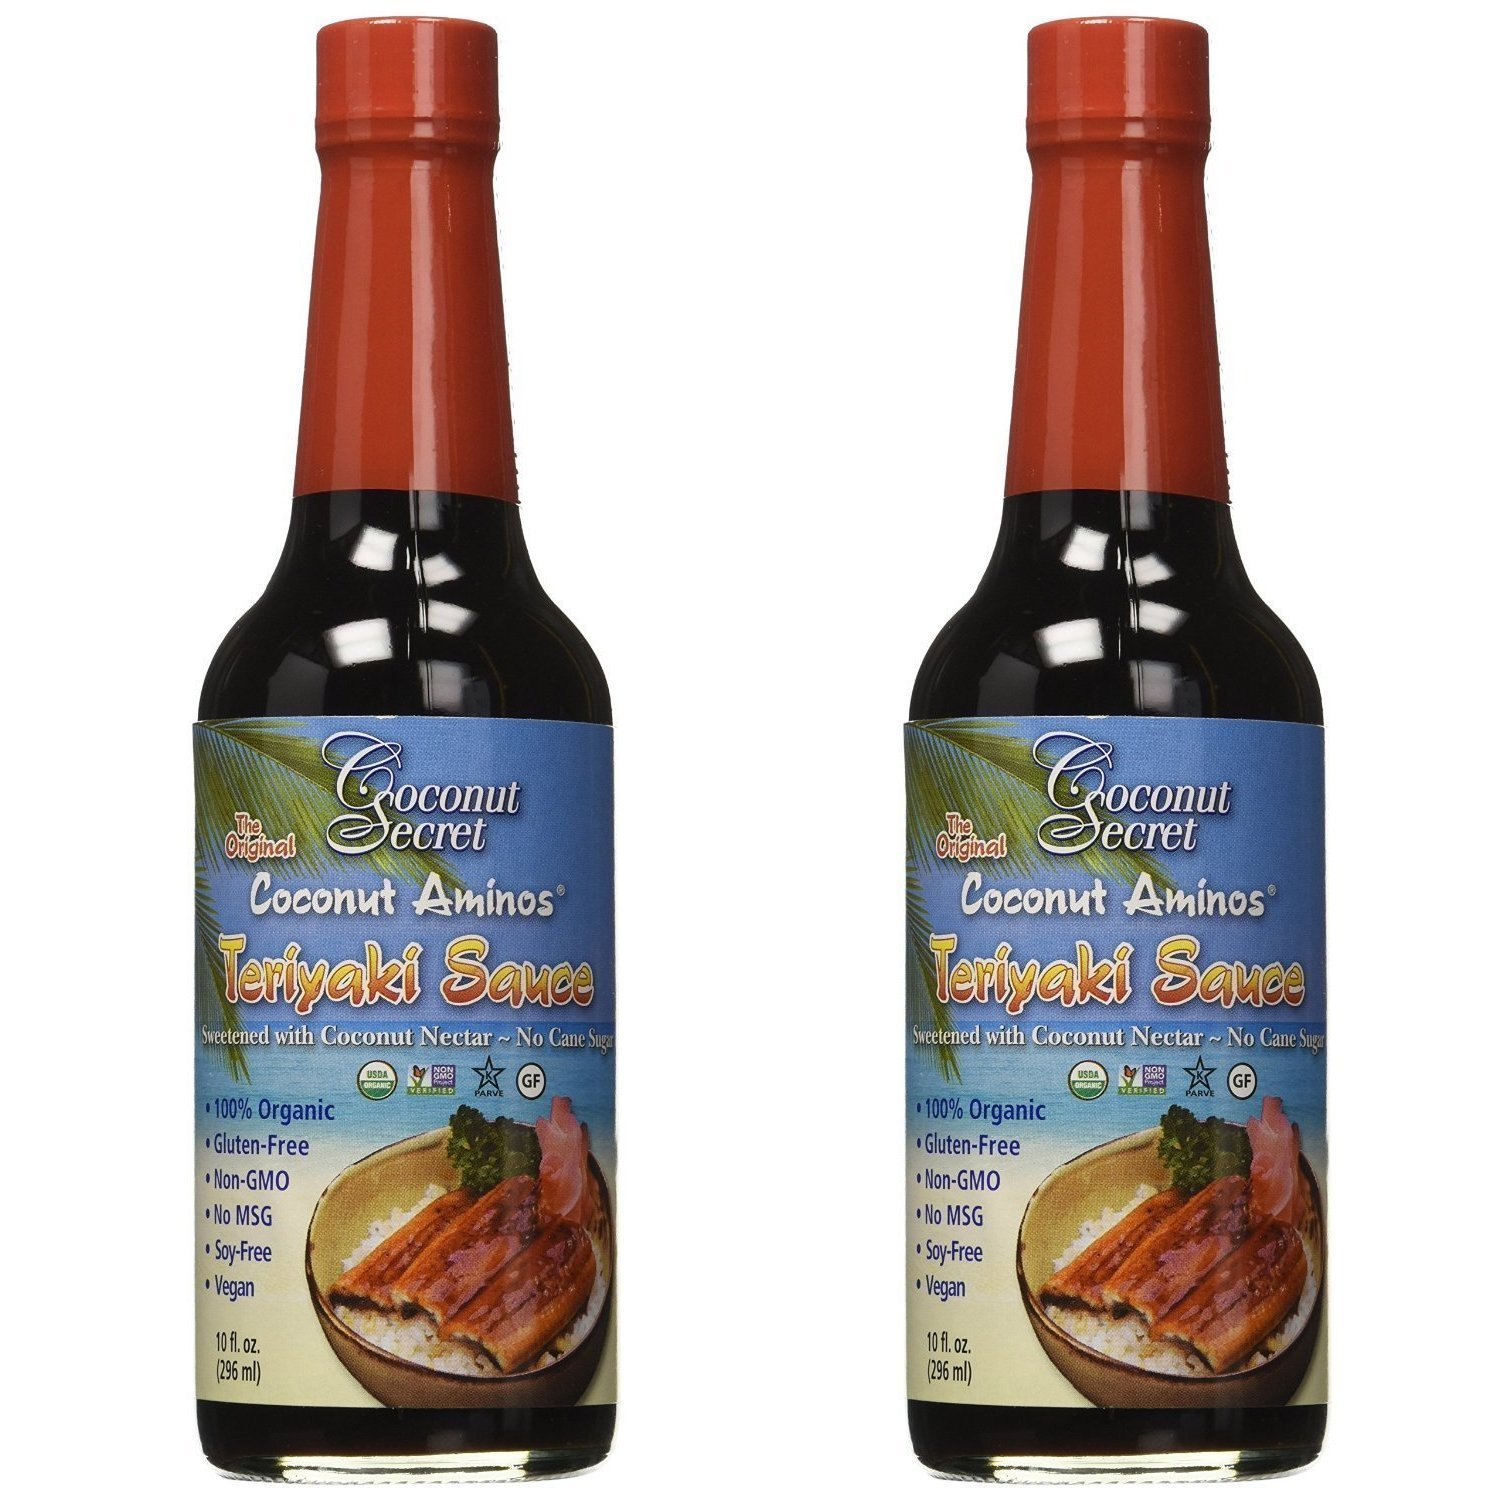 Coconut Secret, Teriyaki Sauce, Coconut Aminos, 10 fl oz (2-Pack)